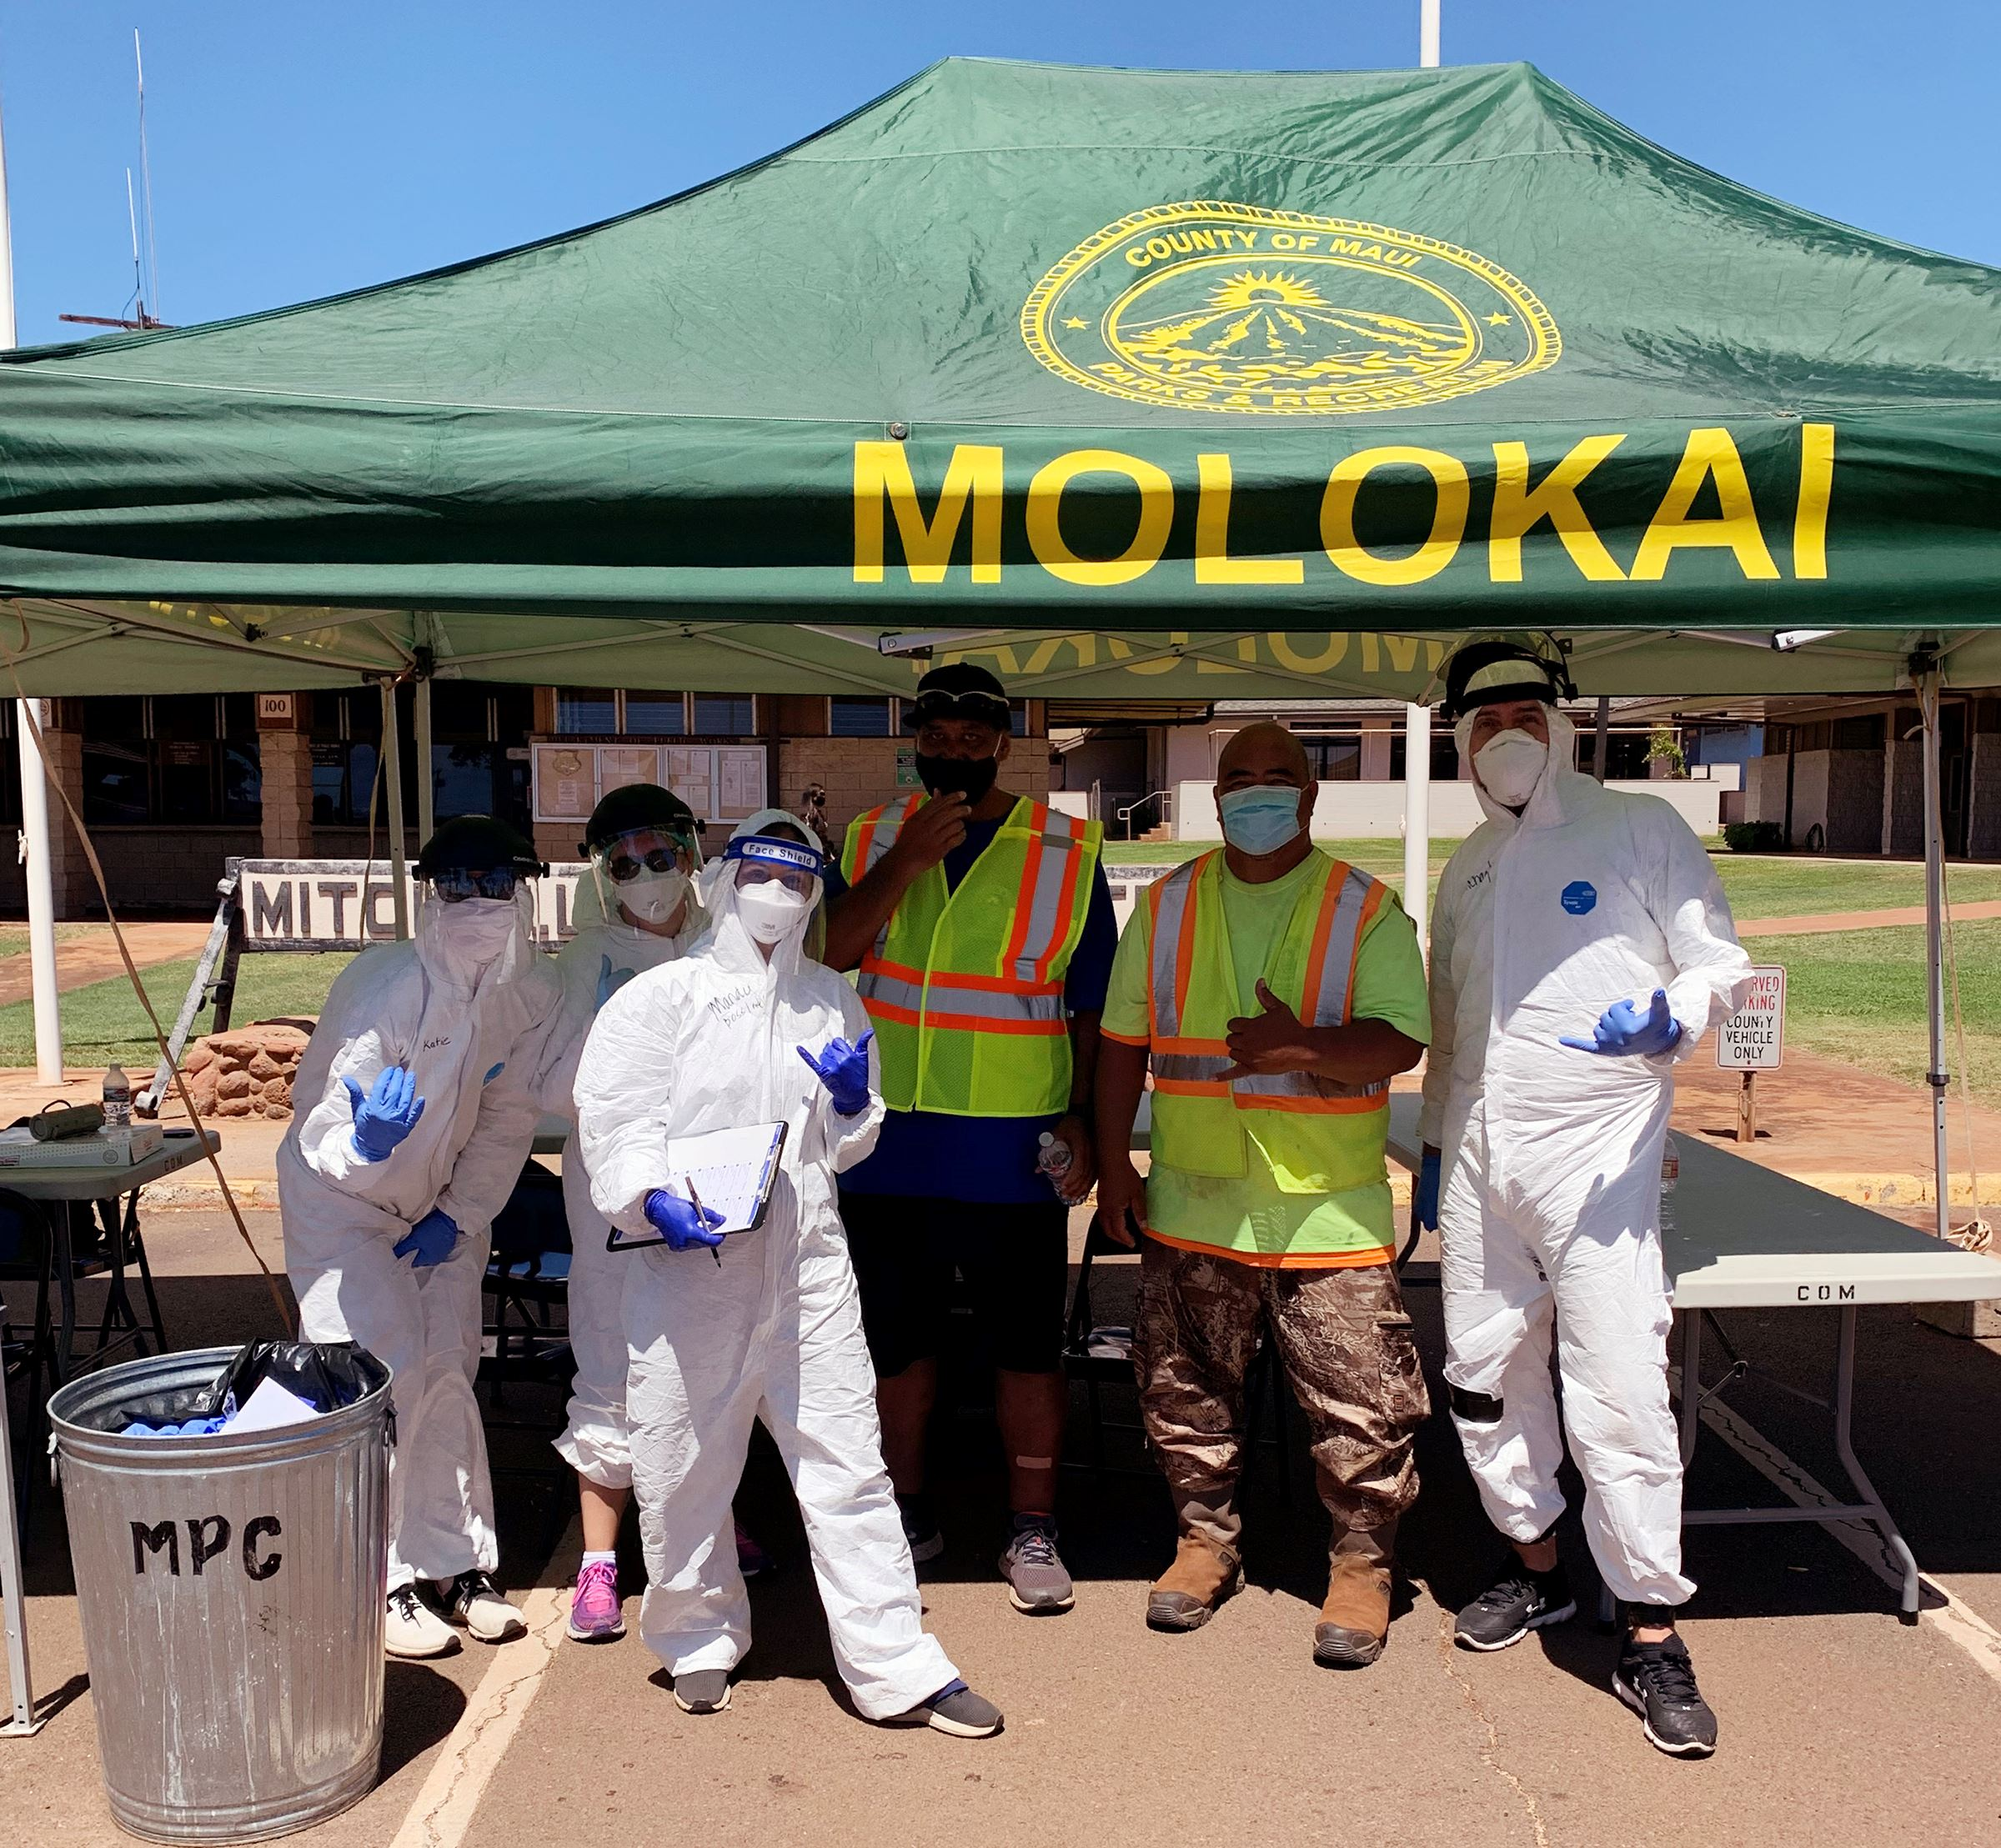 Minit Medical Molokai testing group 9.8.20